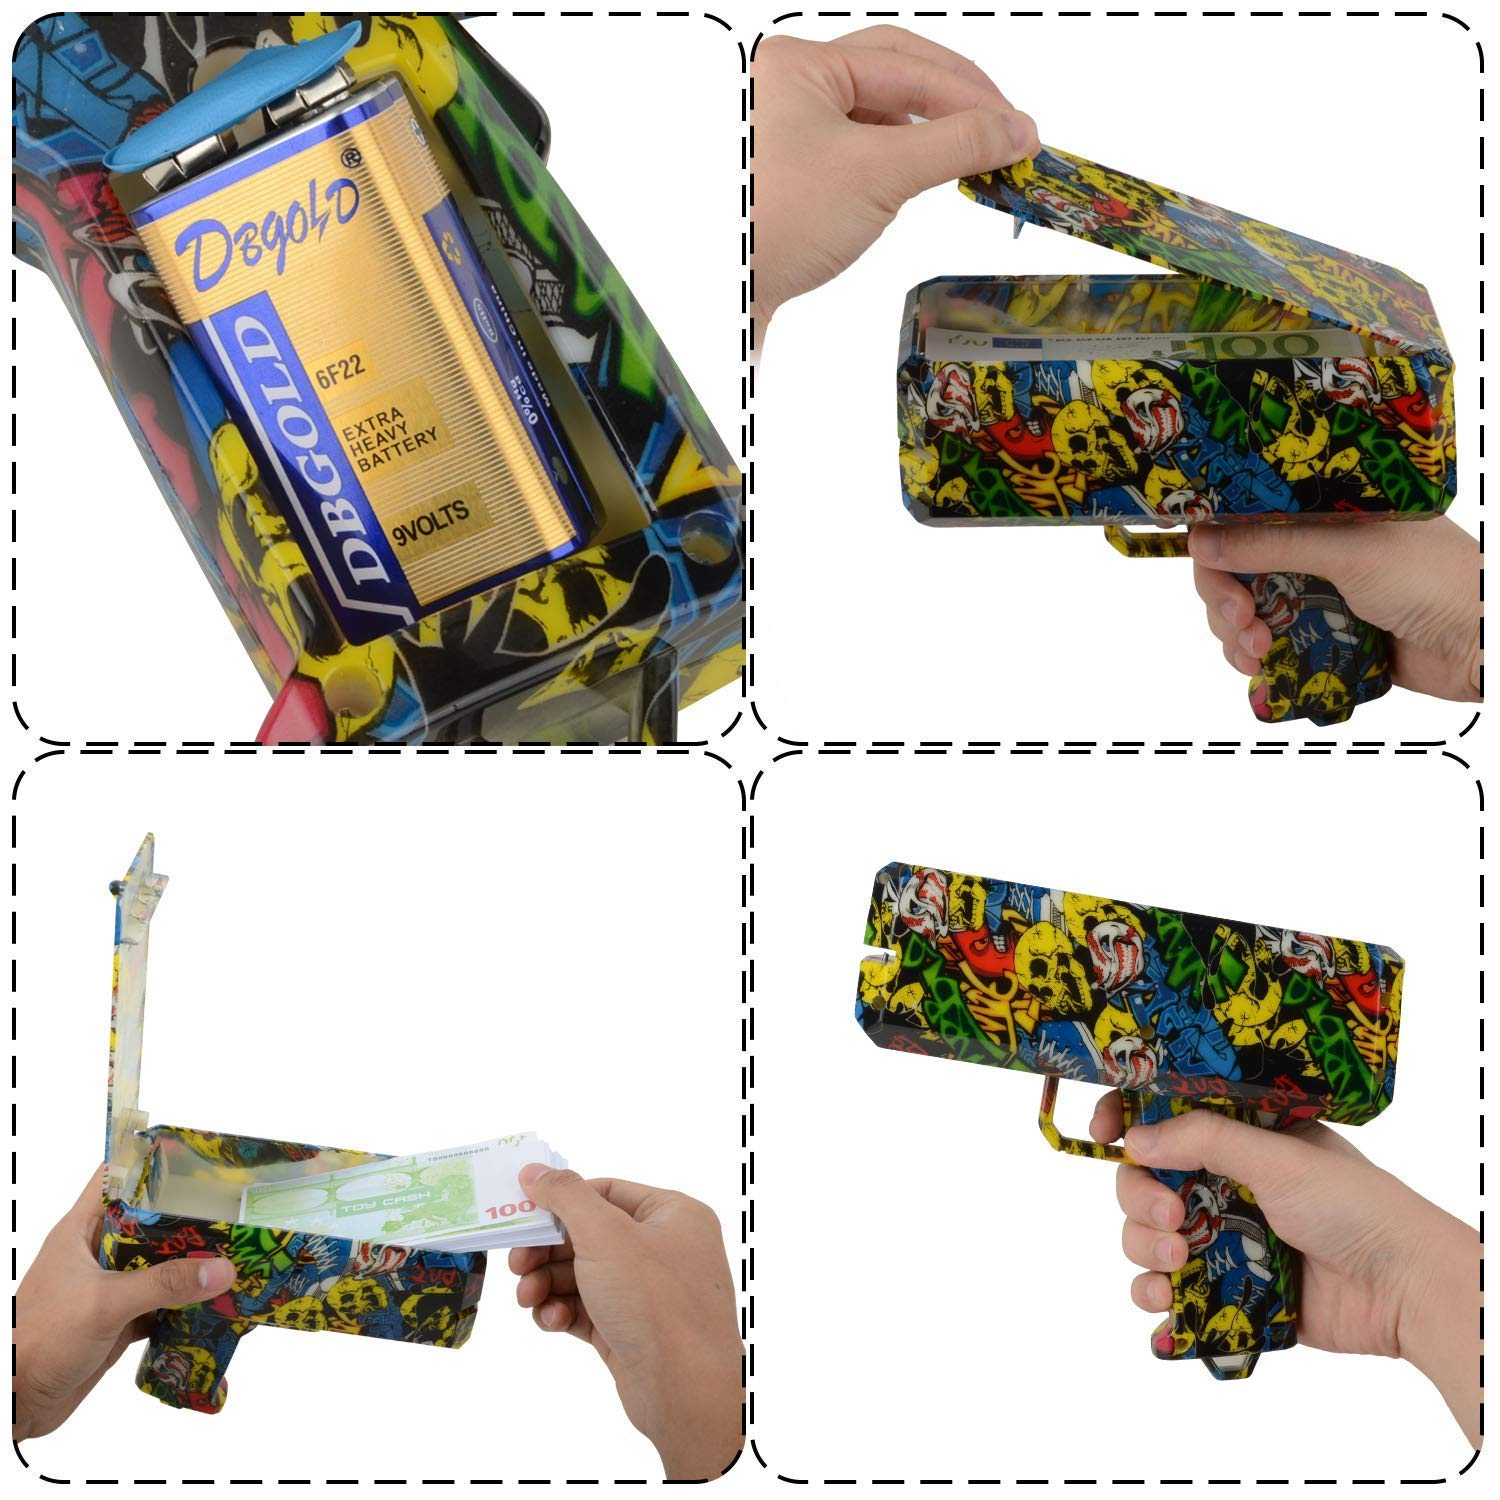 DDGG Make It Rain Money Gun Cash Gun Christmas Gift Cash*200 by DDGG (Image #3)